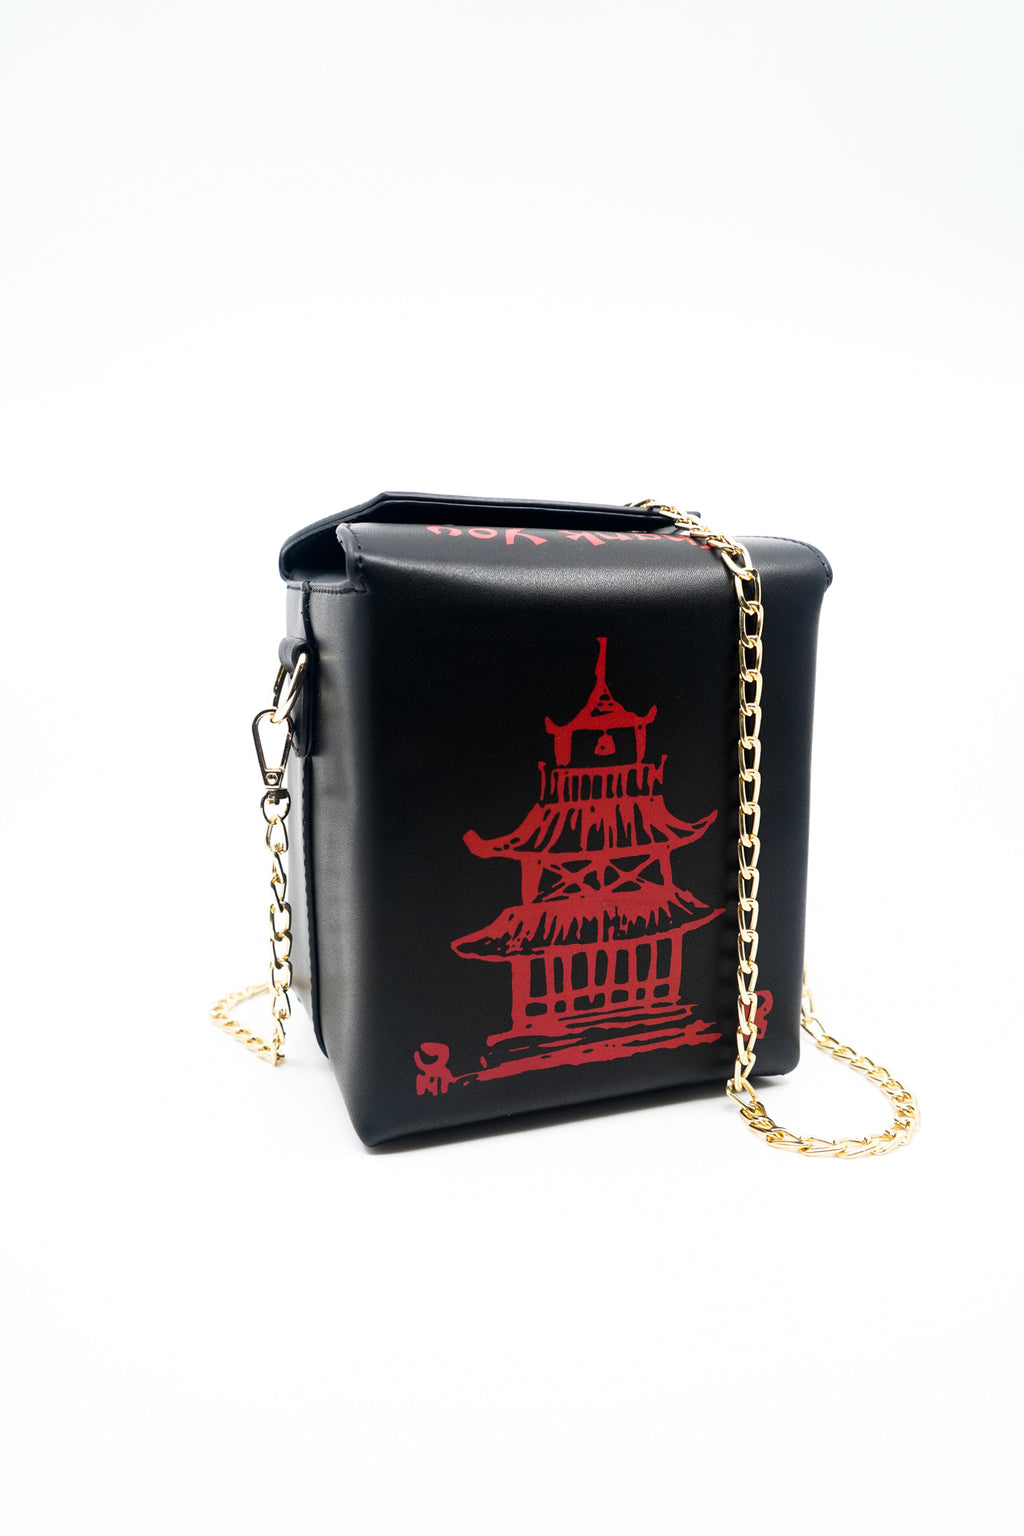 Chinese Take Out Box Cross Body Shoulder Bag in Black - Fashion House USA